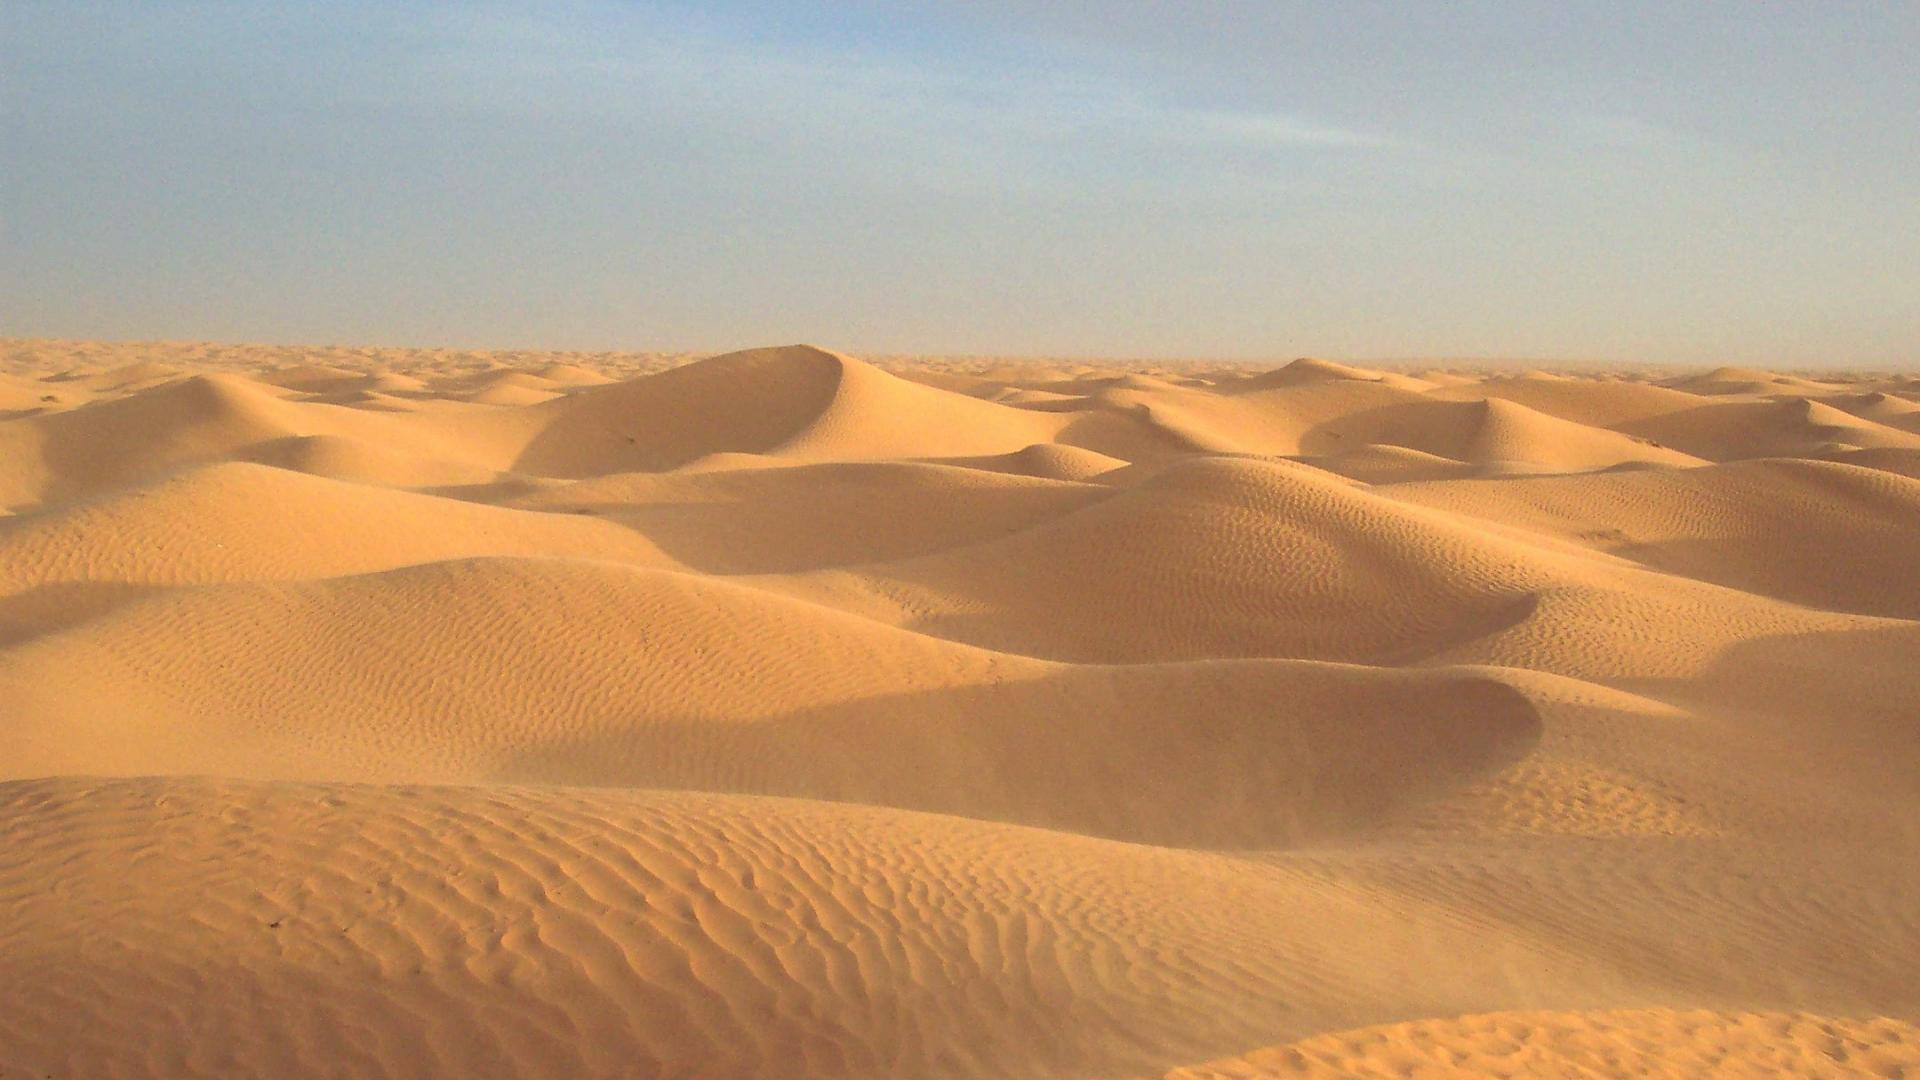 Yellow Desert Dunes Hd Wallpaper Hq Desktop 1920x1080px